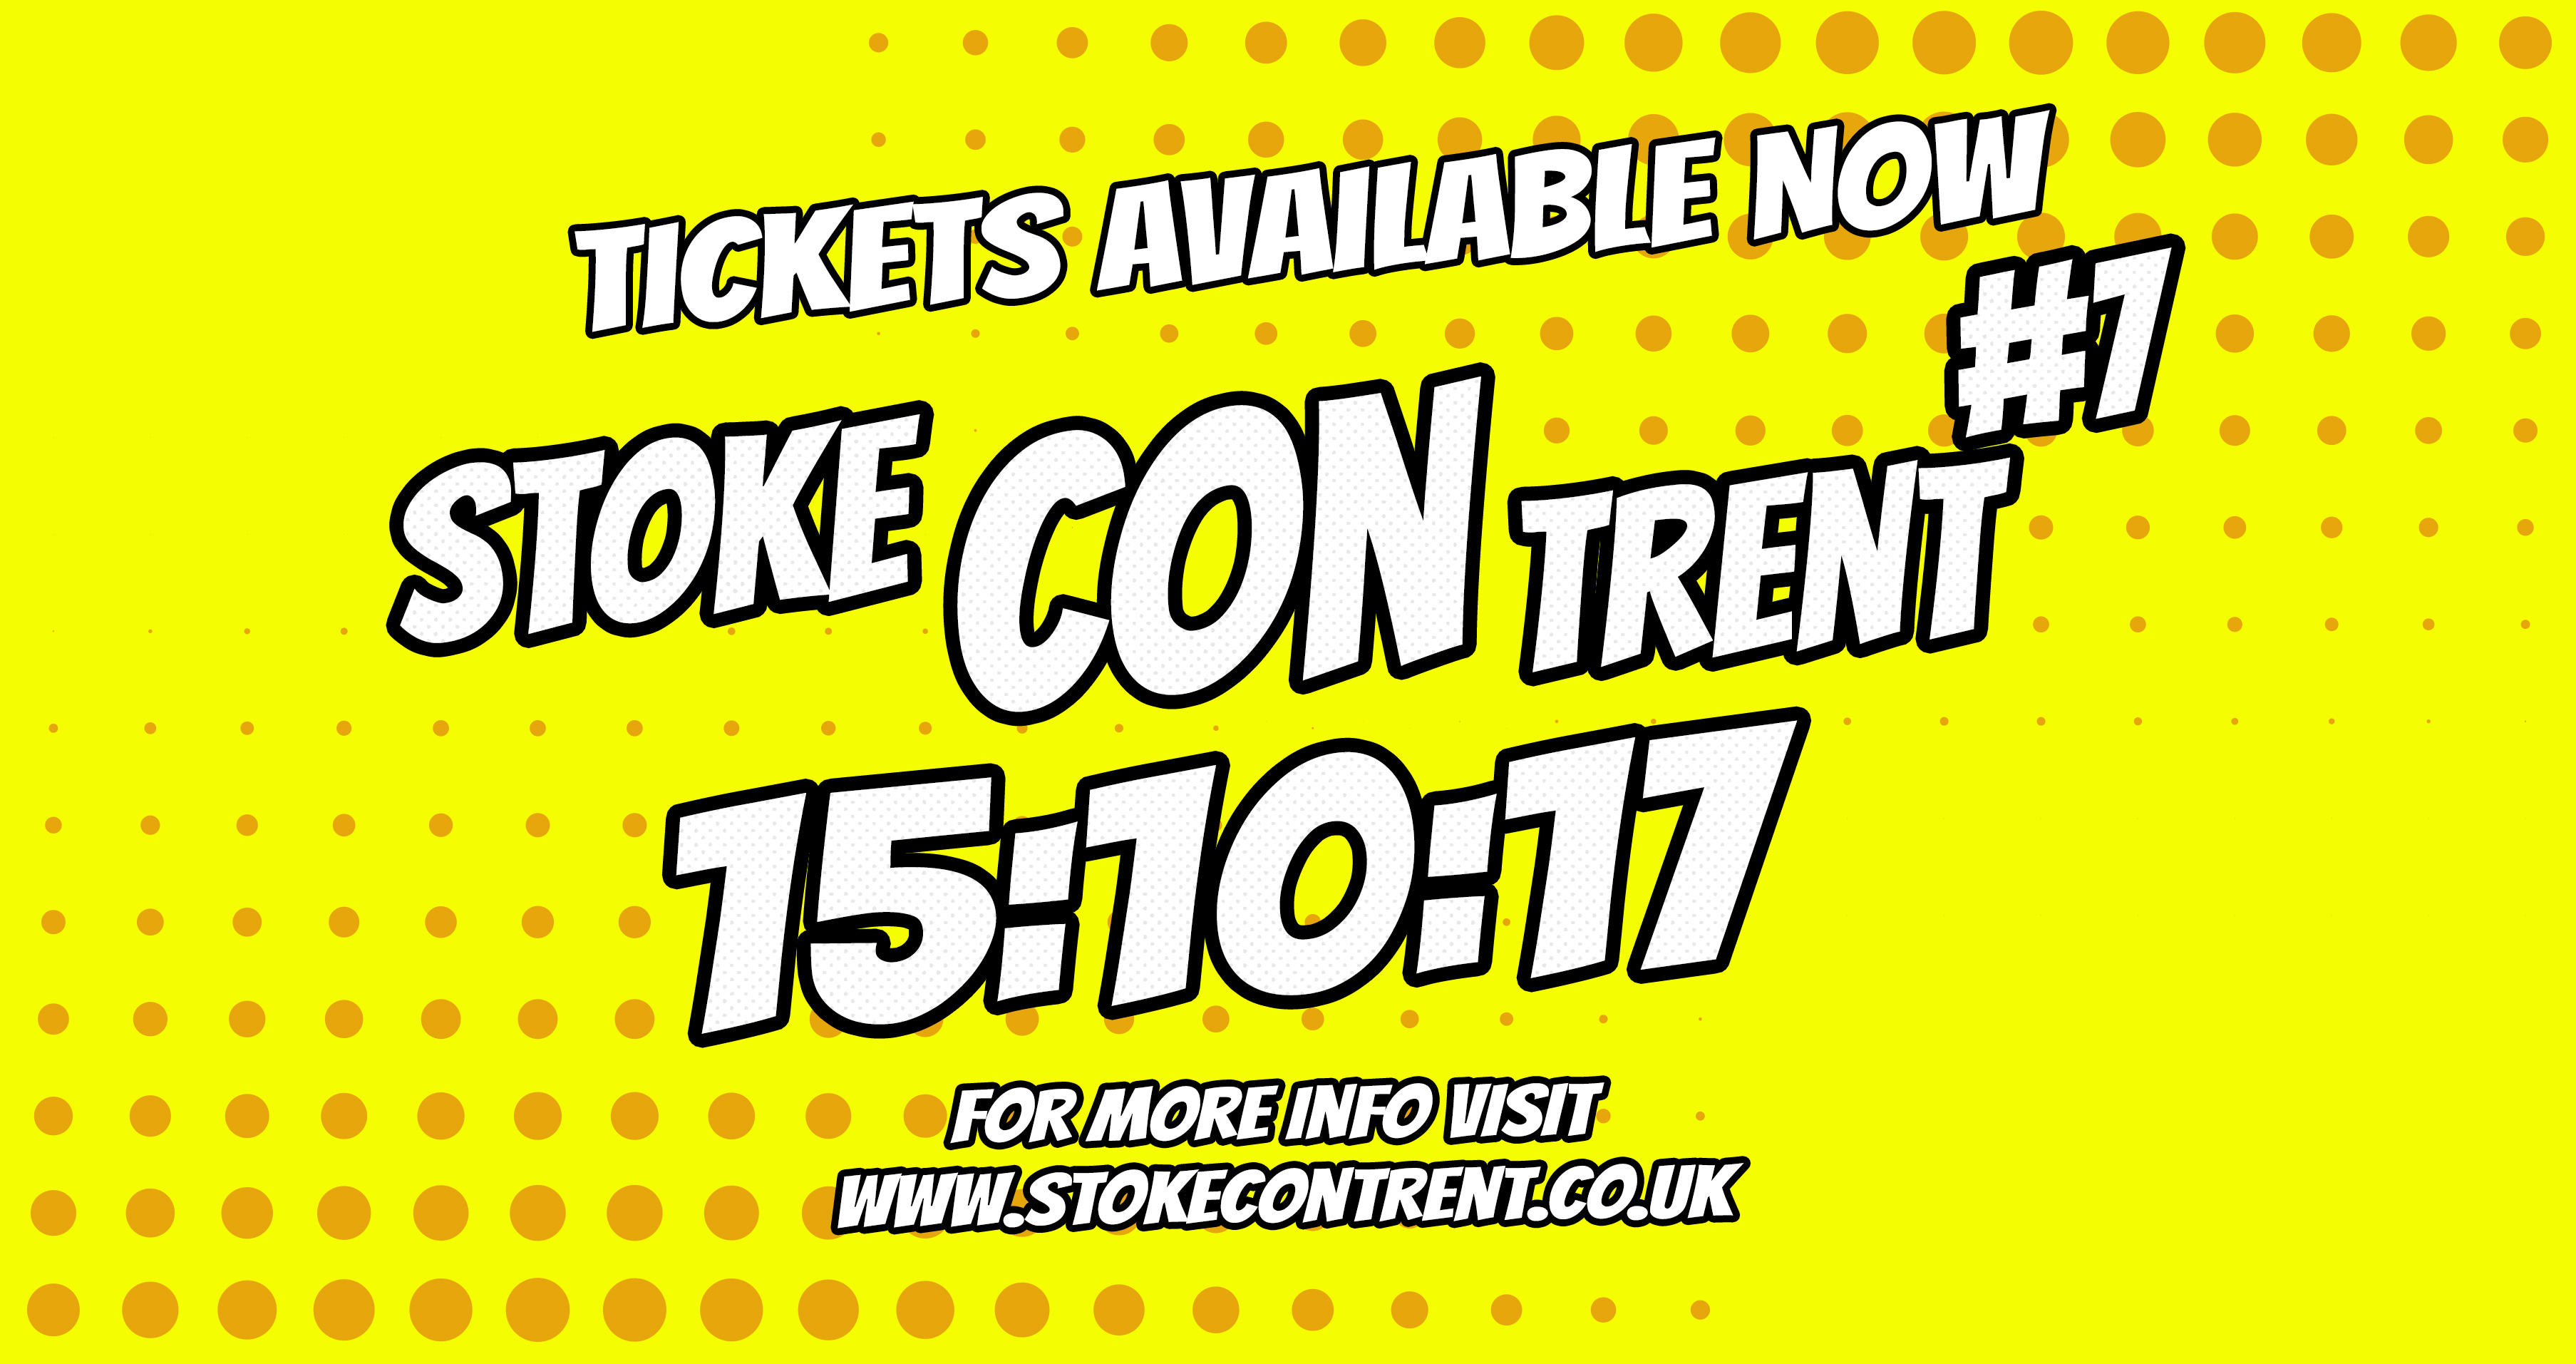 Stoke CON Trent #7 15-10-17 Tickets Available Now